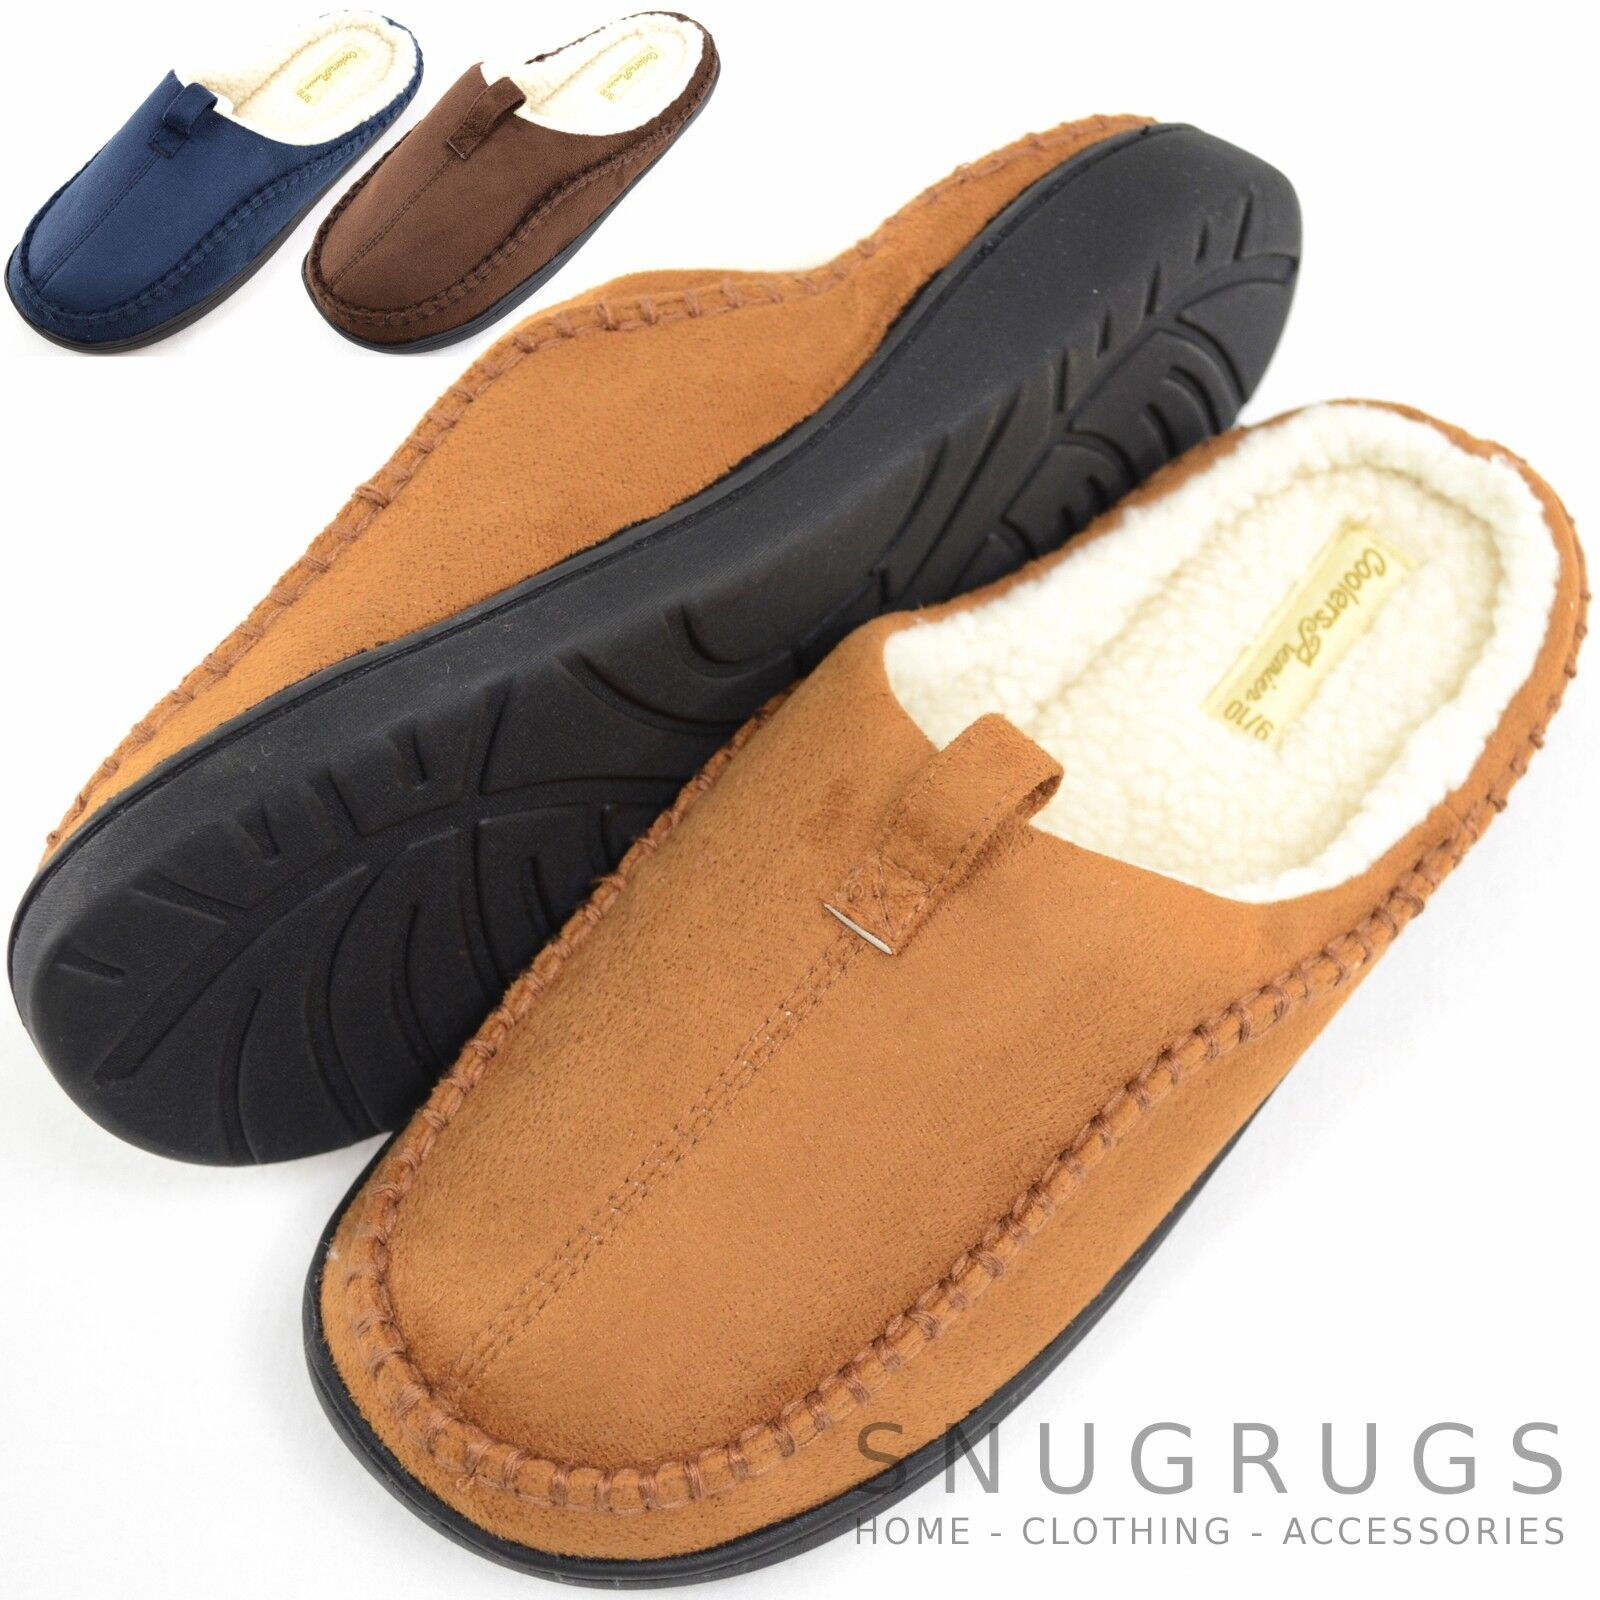 163f7fa8d Details about Mens Soft Fleece Mules / Slippers / Indoor Shoes with Warm Faux  Fur Inners